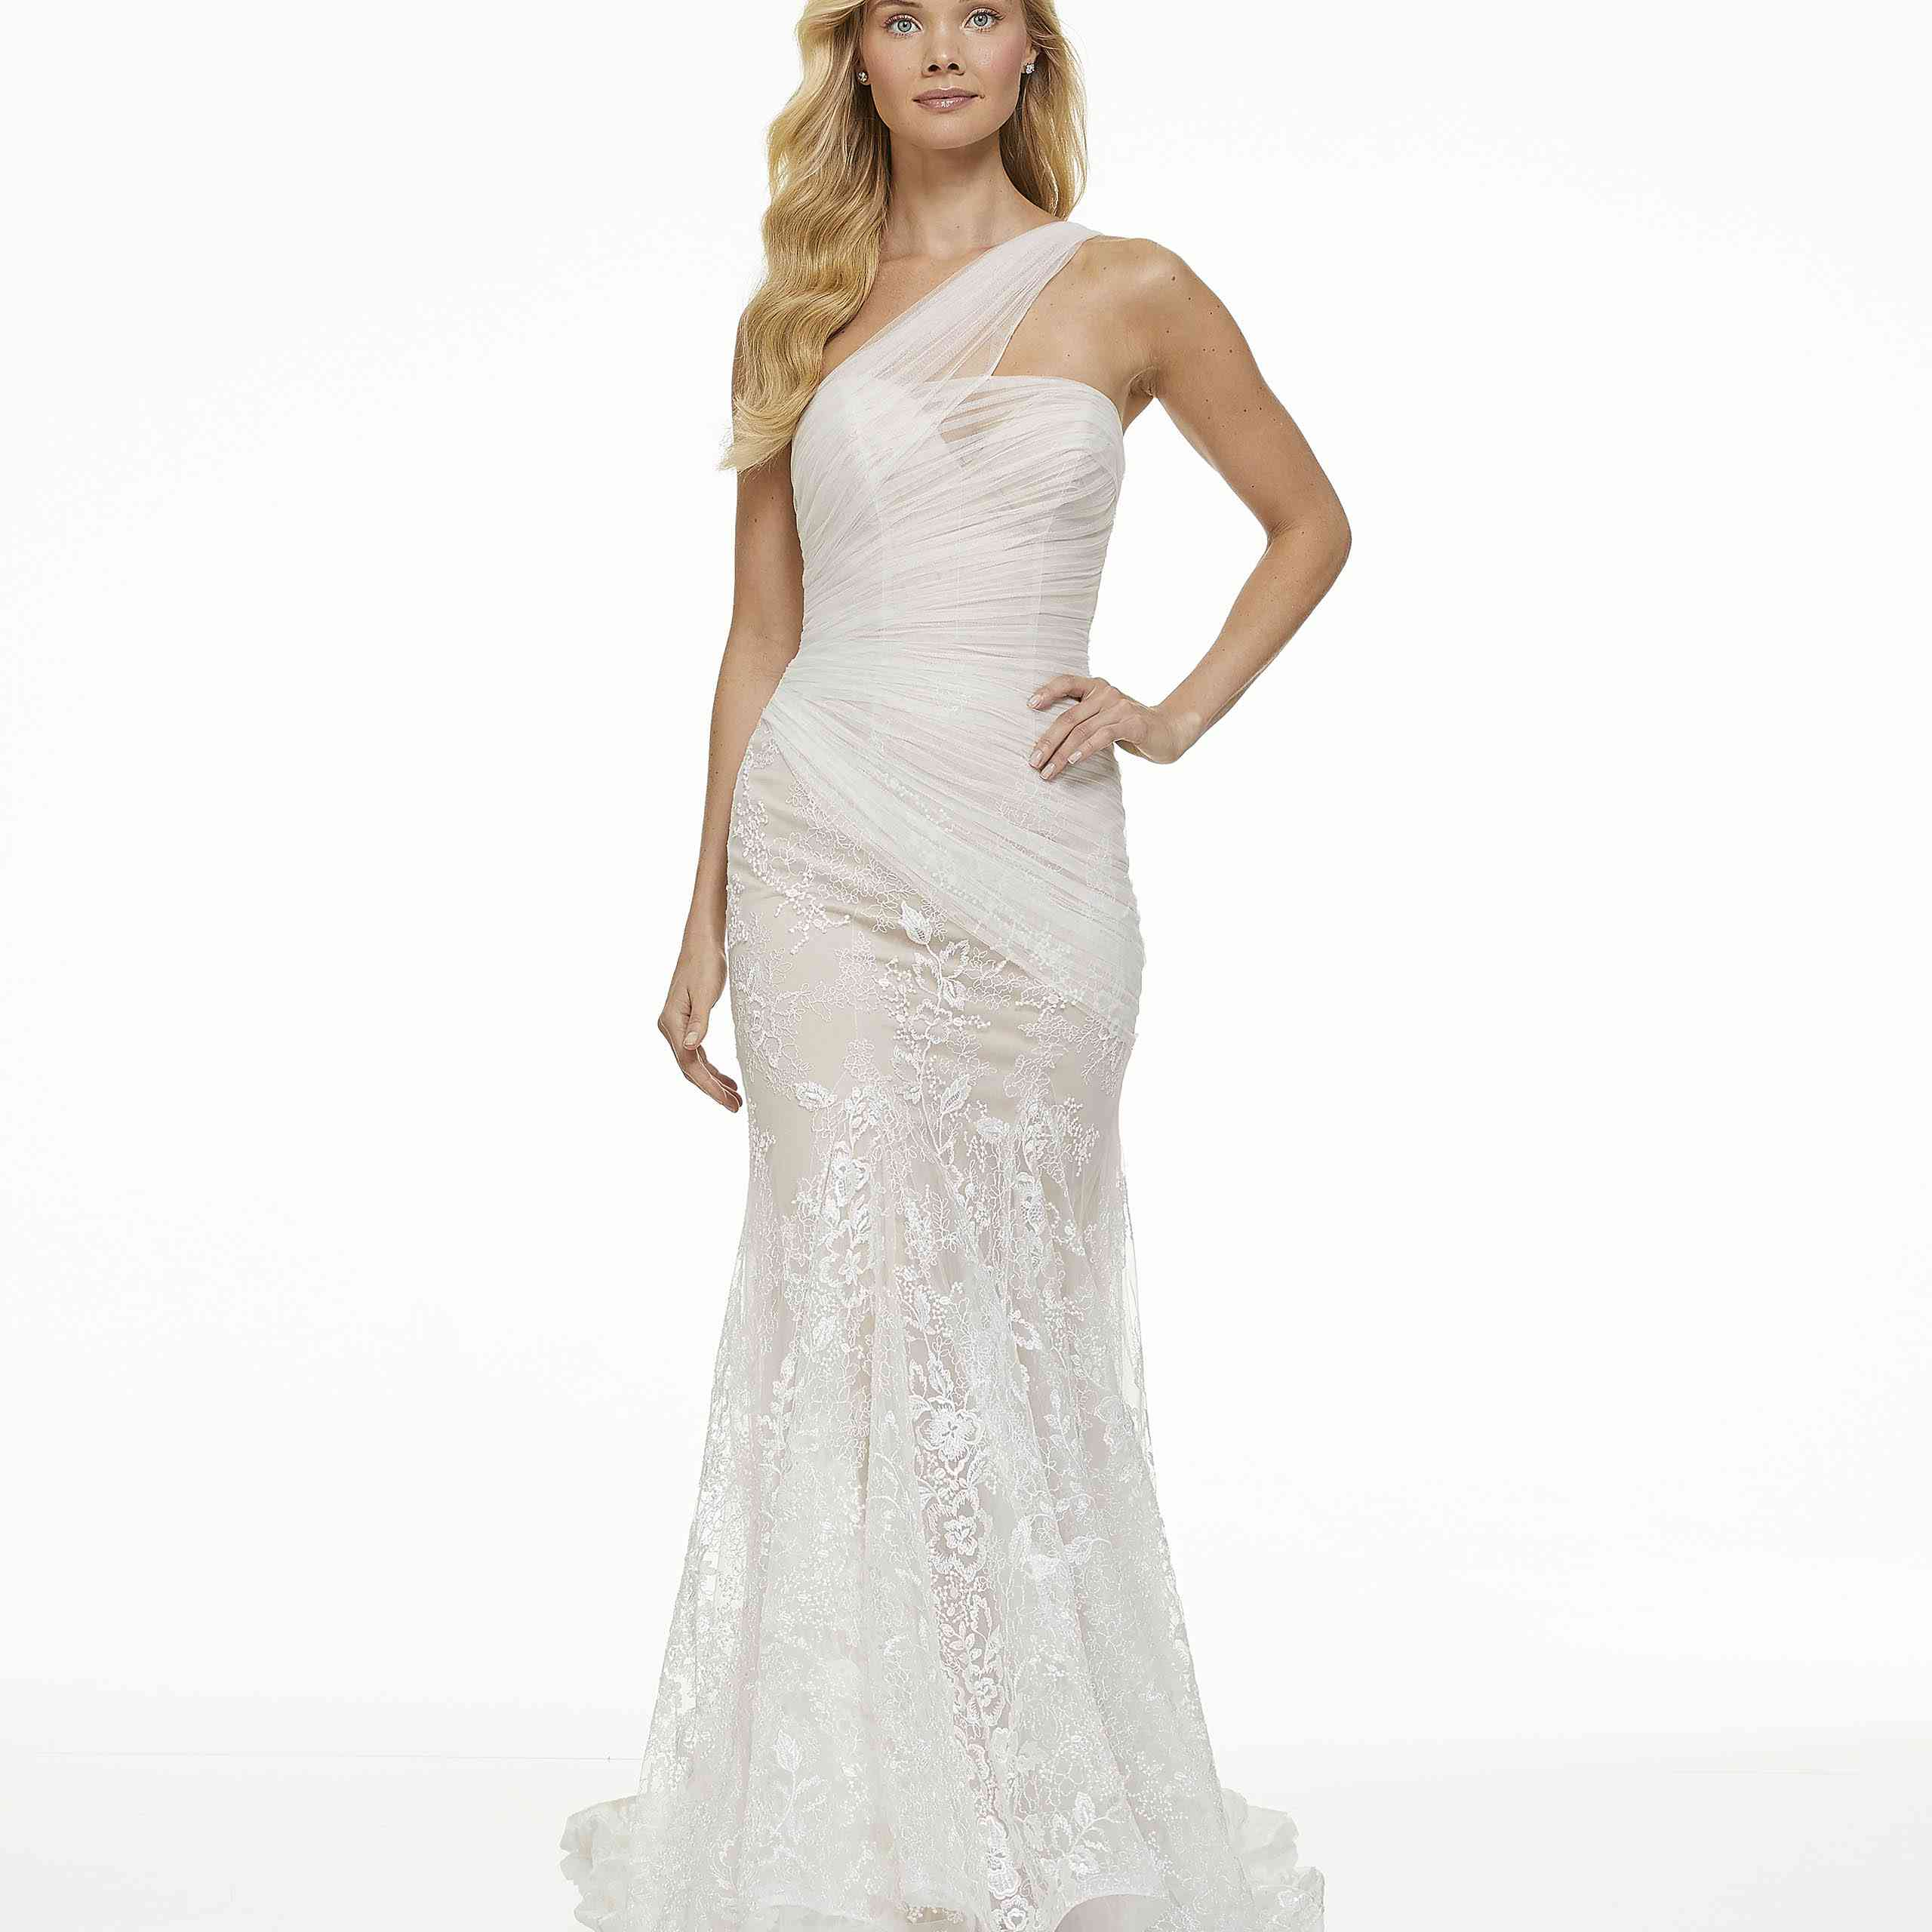 Model in one-shoulder fit-and-flare wedding dress